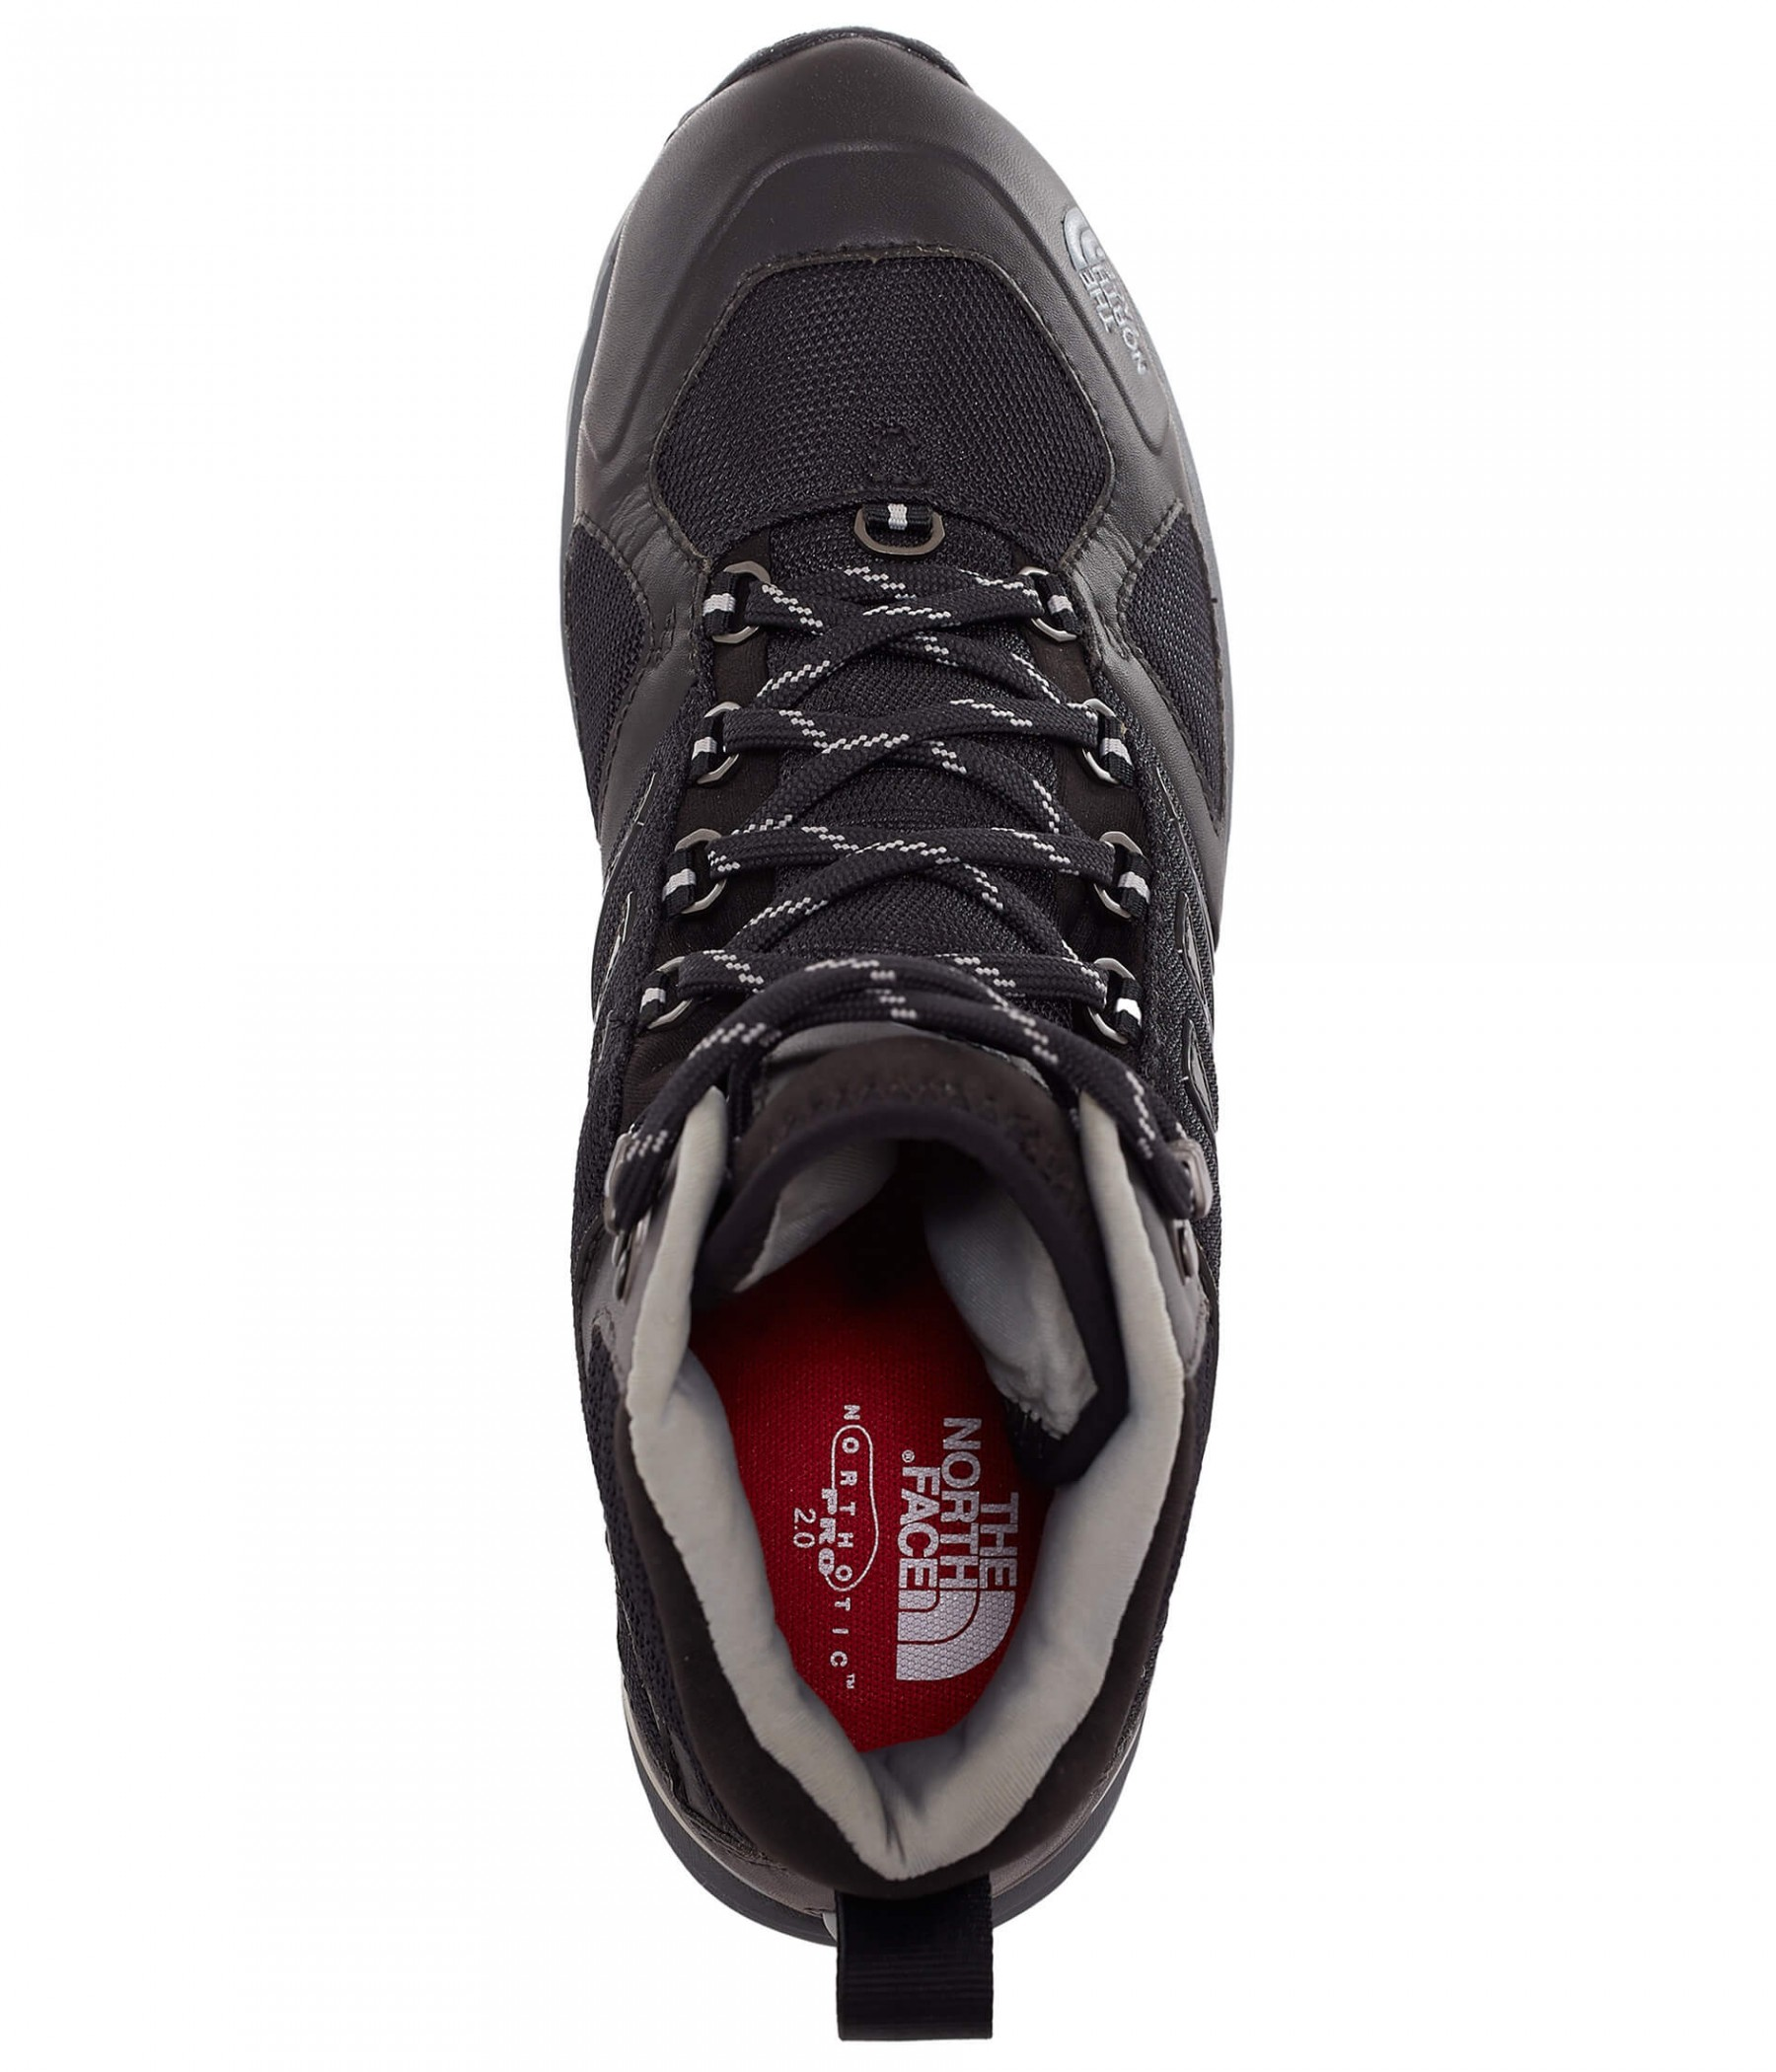 sports shoes 378b8 3dac5 The North Face Men's Ultra Extreme II GTX Boots Regular Price: $235 Special  Price $165 30% off